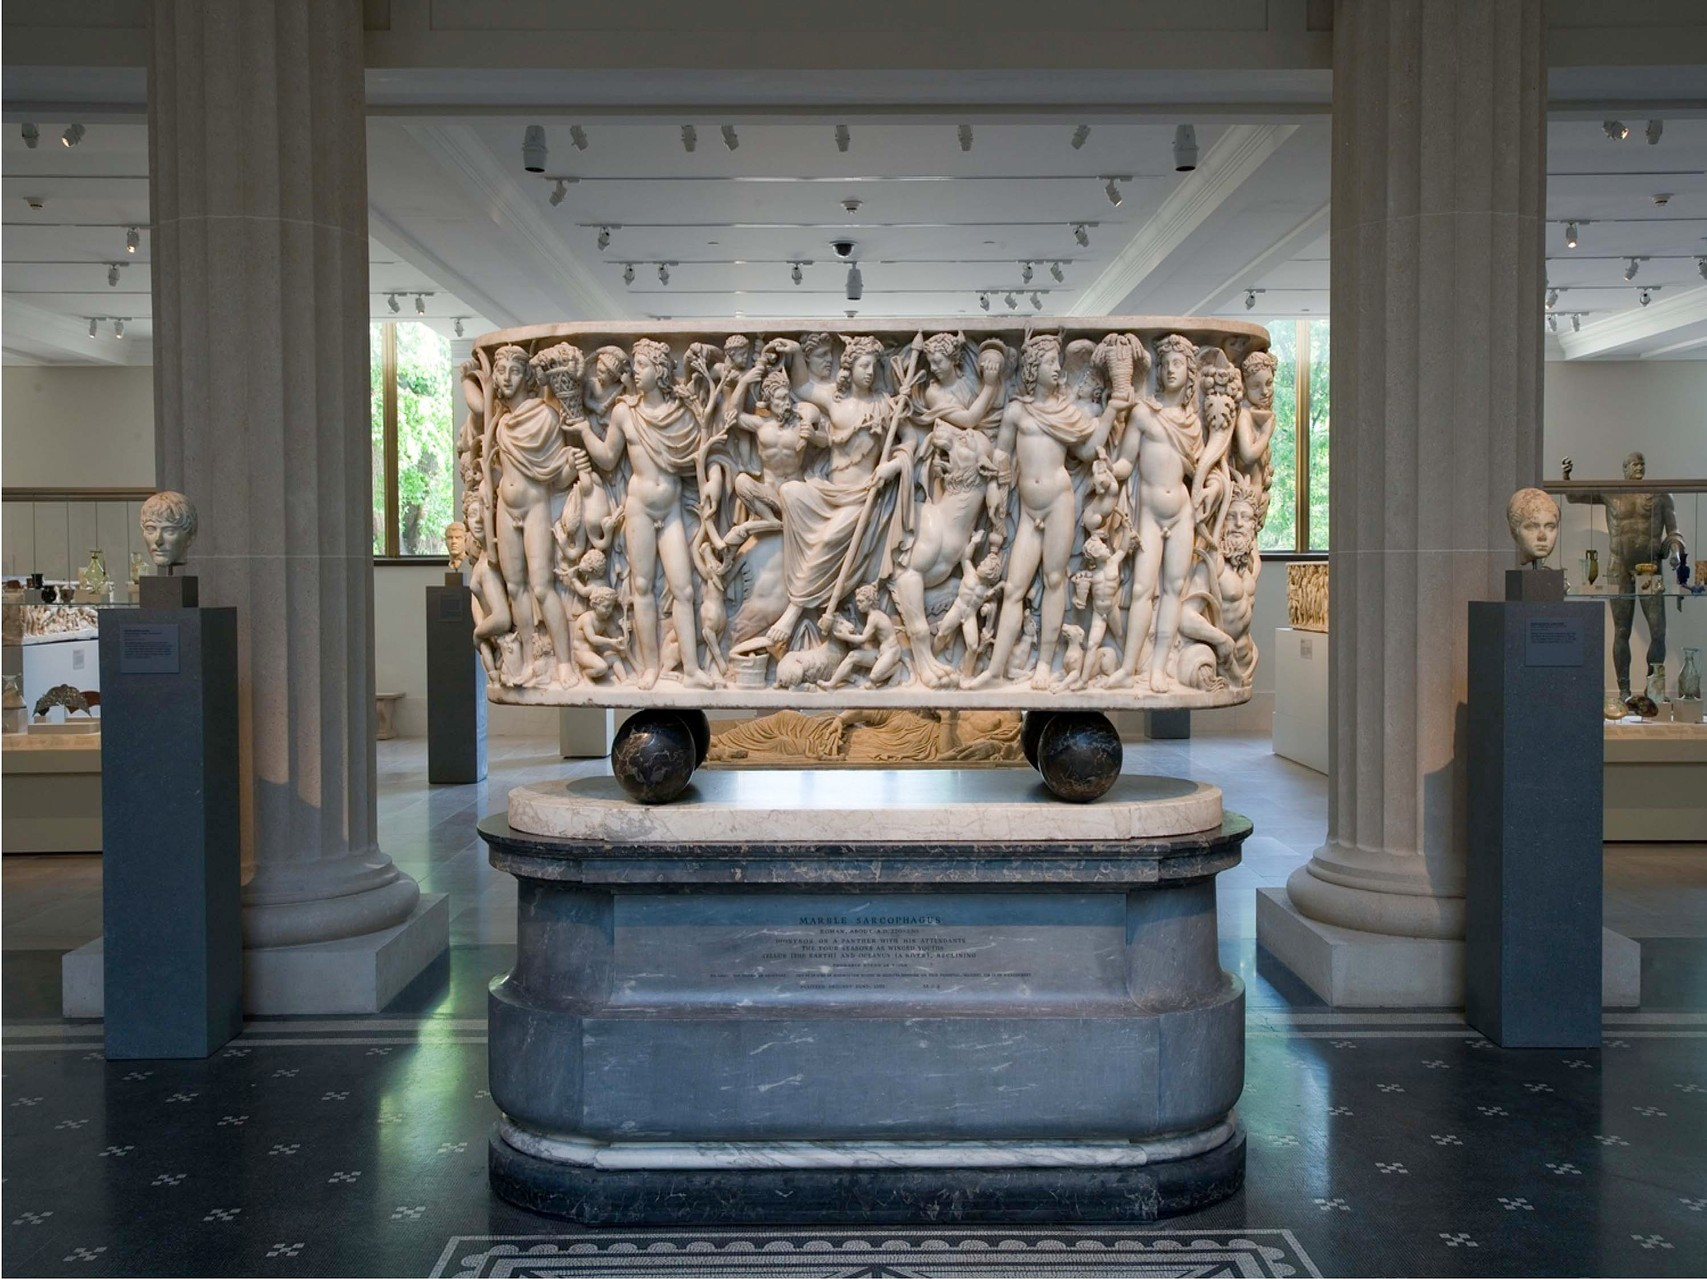 The Badminton sarcophagus in the Metropolitan Museum, New York